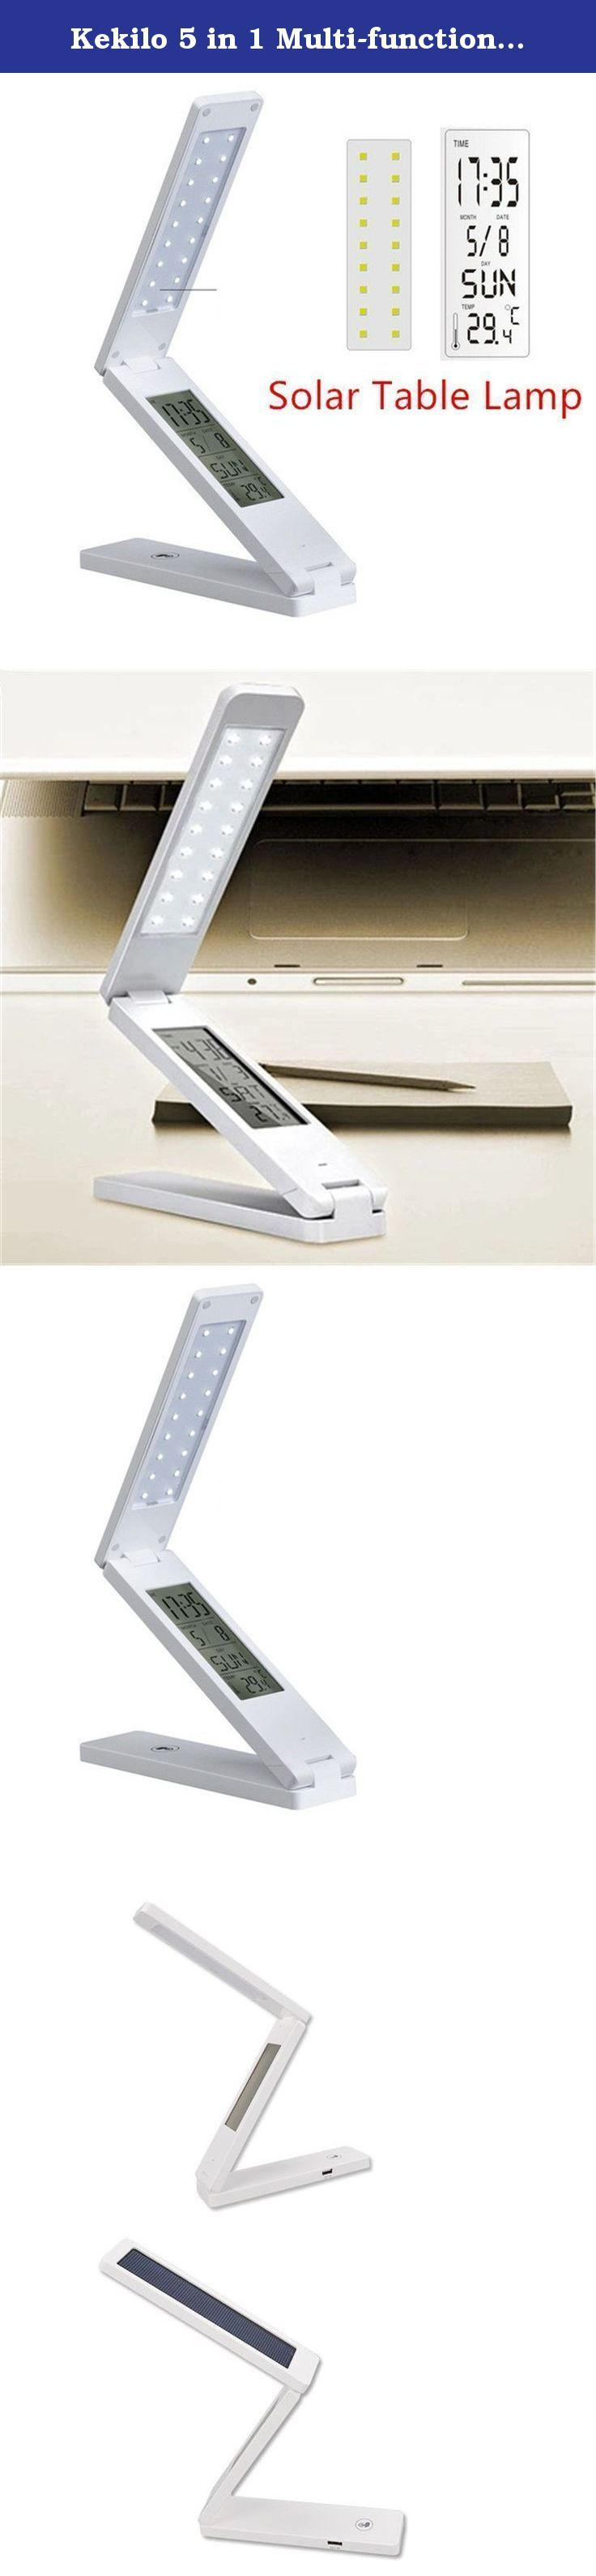 Kekilo 5 in 1 Multi-function Folding LED Solar Rechargeable Table Lamp with Alarm Clock Calendar Temperature Display Table Light Portable Eye Protection LED Desk Lamp. Functions: Folded in any angle, easy to carry, and can be put on the desk or mounted on the wall Eye-Protective, you can adjust the brightness of the LED lamp High efficiency solar panel 18PCS high light LED(1.8W)=15W incandescent light Built-in high capacity rechargeable lithium battery, 5-10 hours continuous lighting…